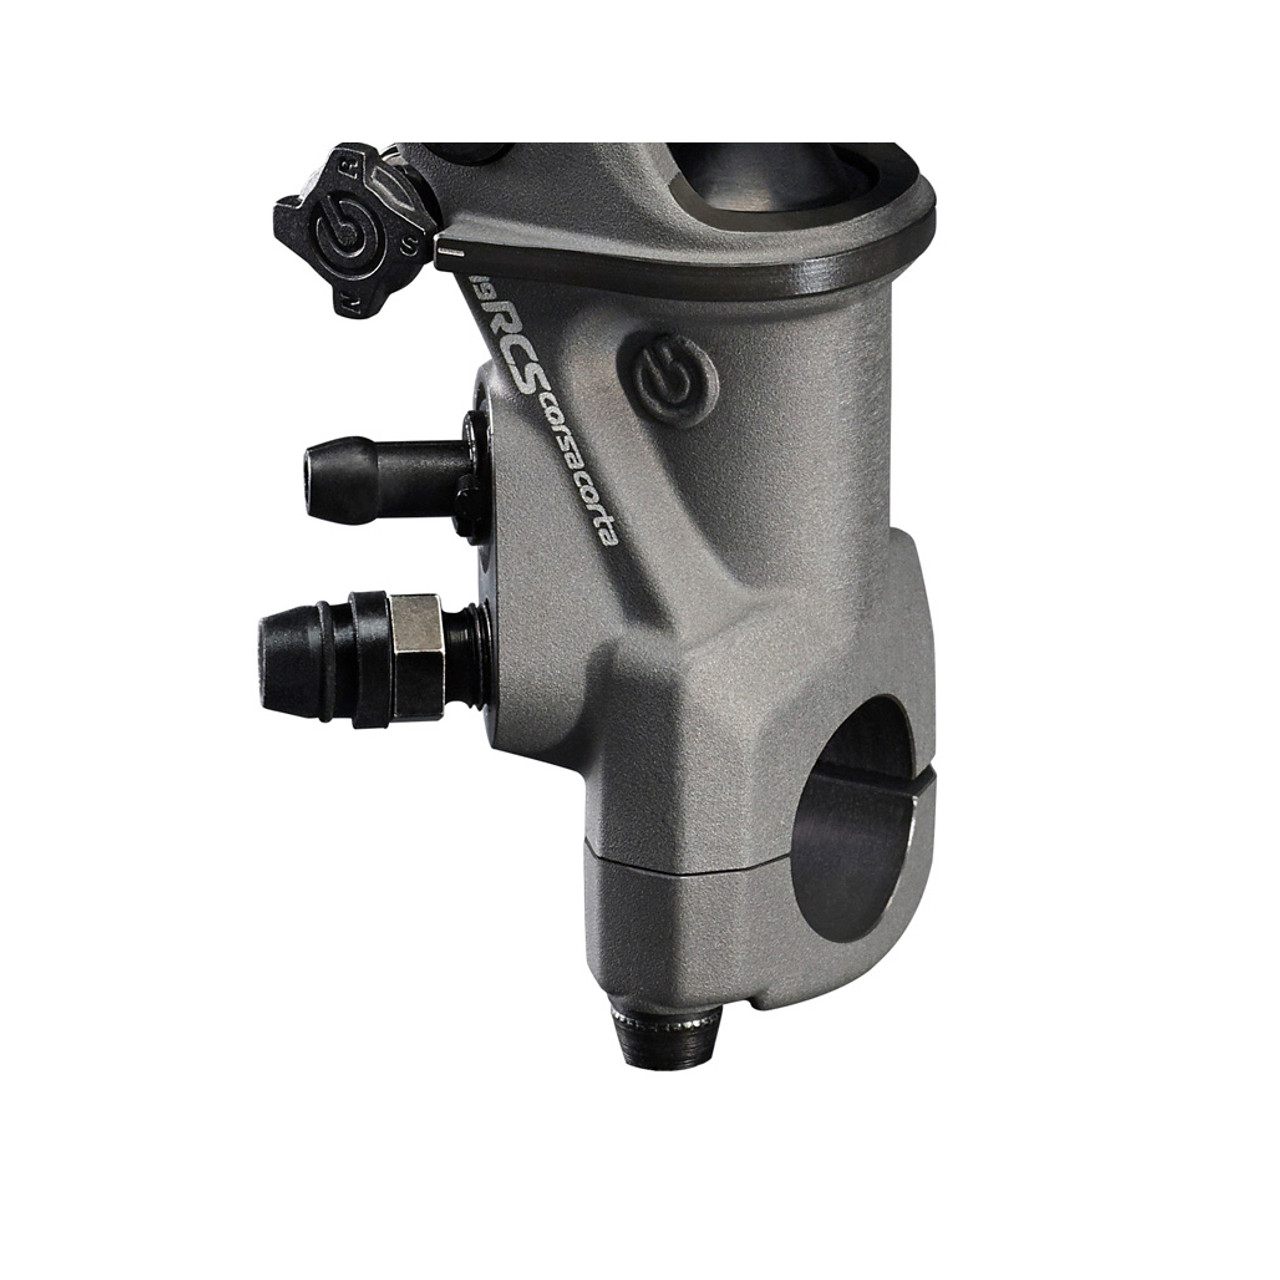 Brembo 19 RCS brake master cylinder side detail